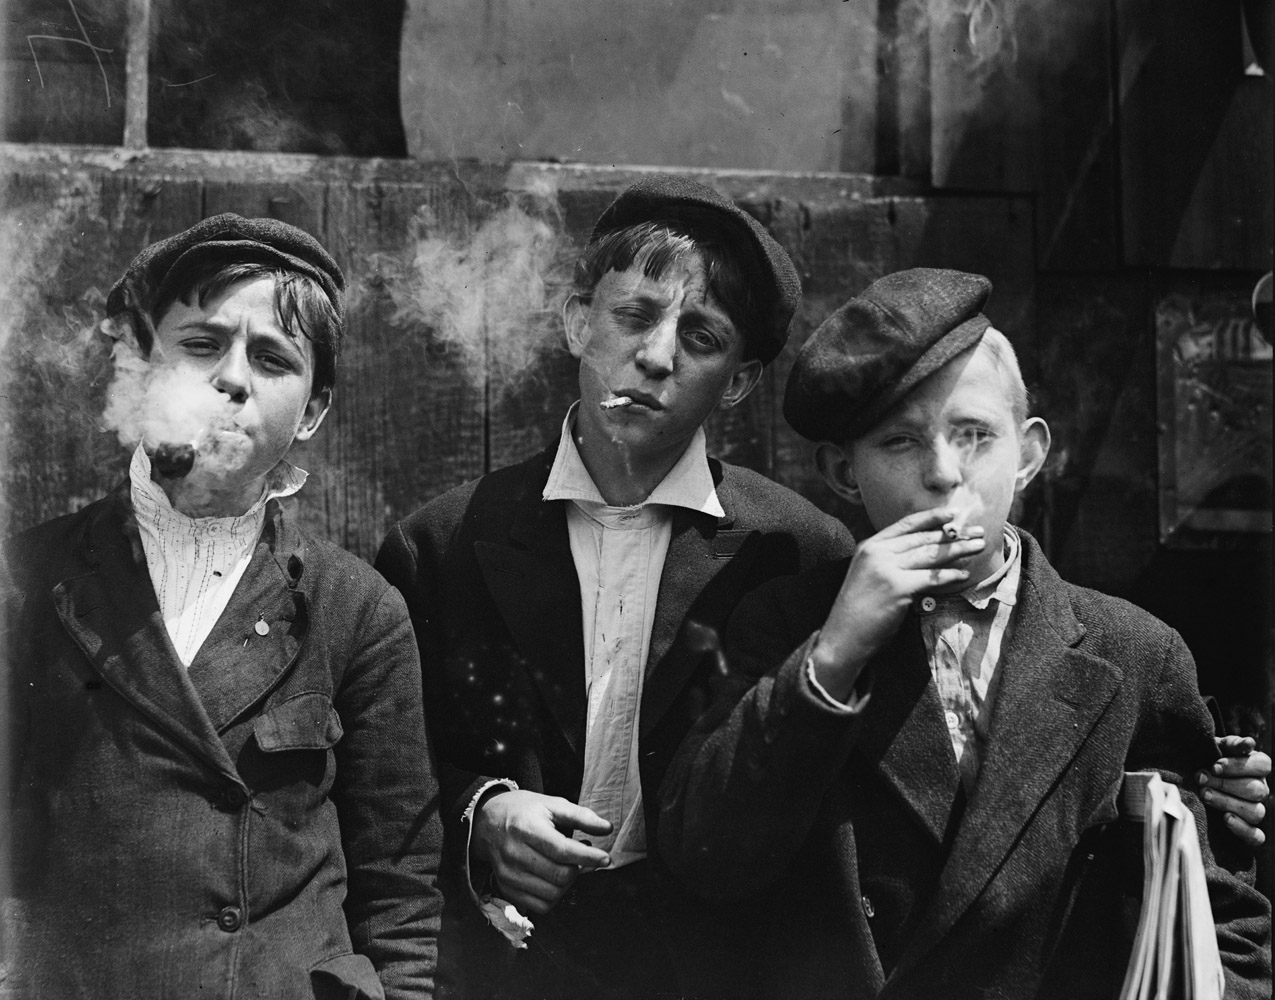 "Raymond Klose (middle), newsboy, 13 years old, St. Louis, Missouri, 1910. 11:00 A.M. Monday, May 9th, 1910. Newsies at Skeeter's Branch, Jefferson near Franklin. They were all smoking.  —Hine's original caption""He was fun, a very funny guy. He always liked to act silly around his nieces and nephews. He had the show dogs, and that was interesting to hear about. He always had at least one at home. They were always Airedales."" —Niece of Raymond Klose"